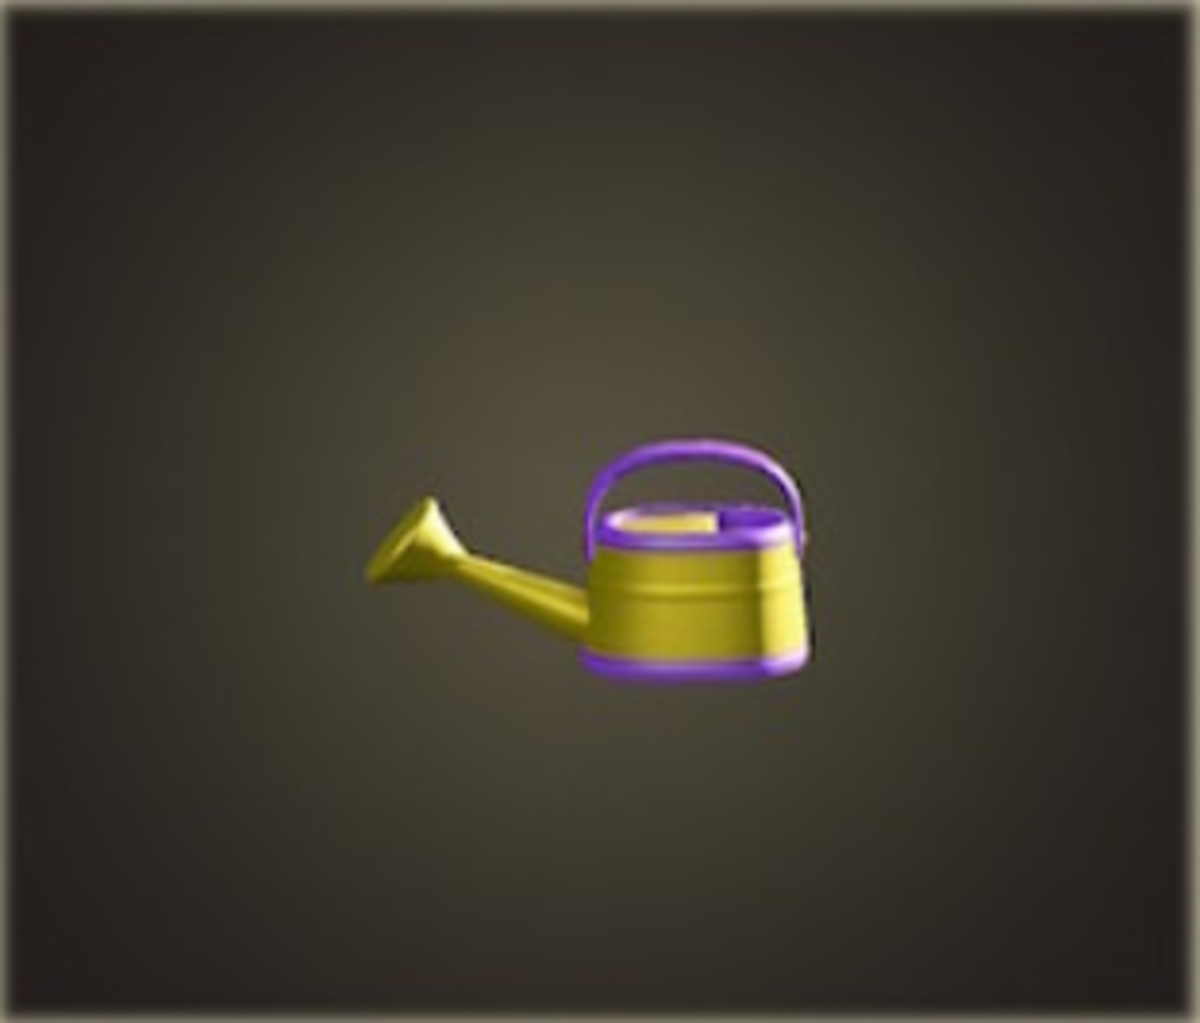 The Golden Watering Can